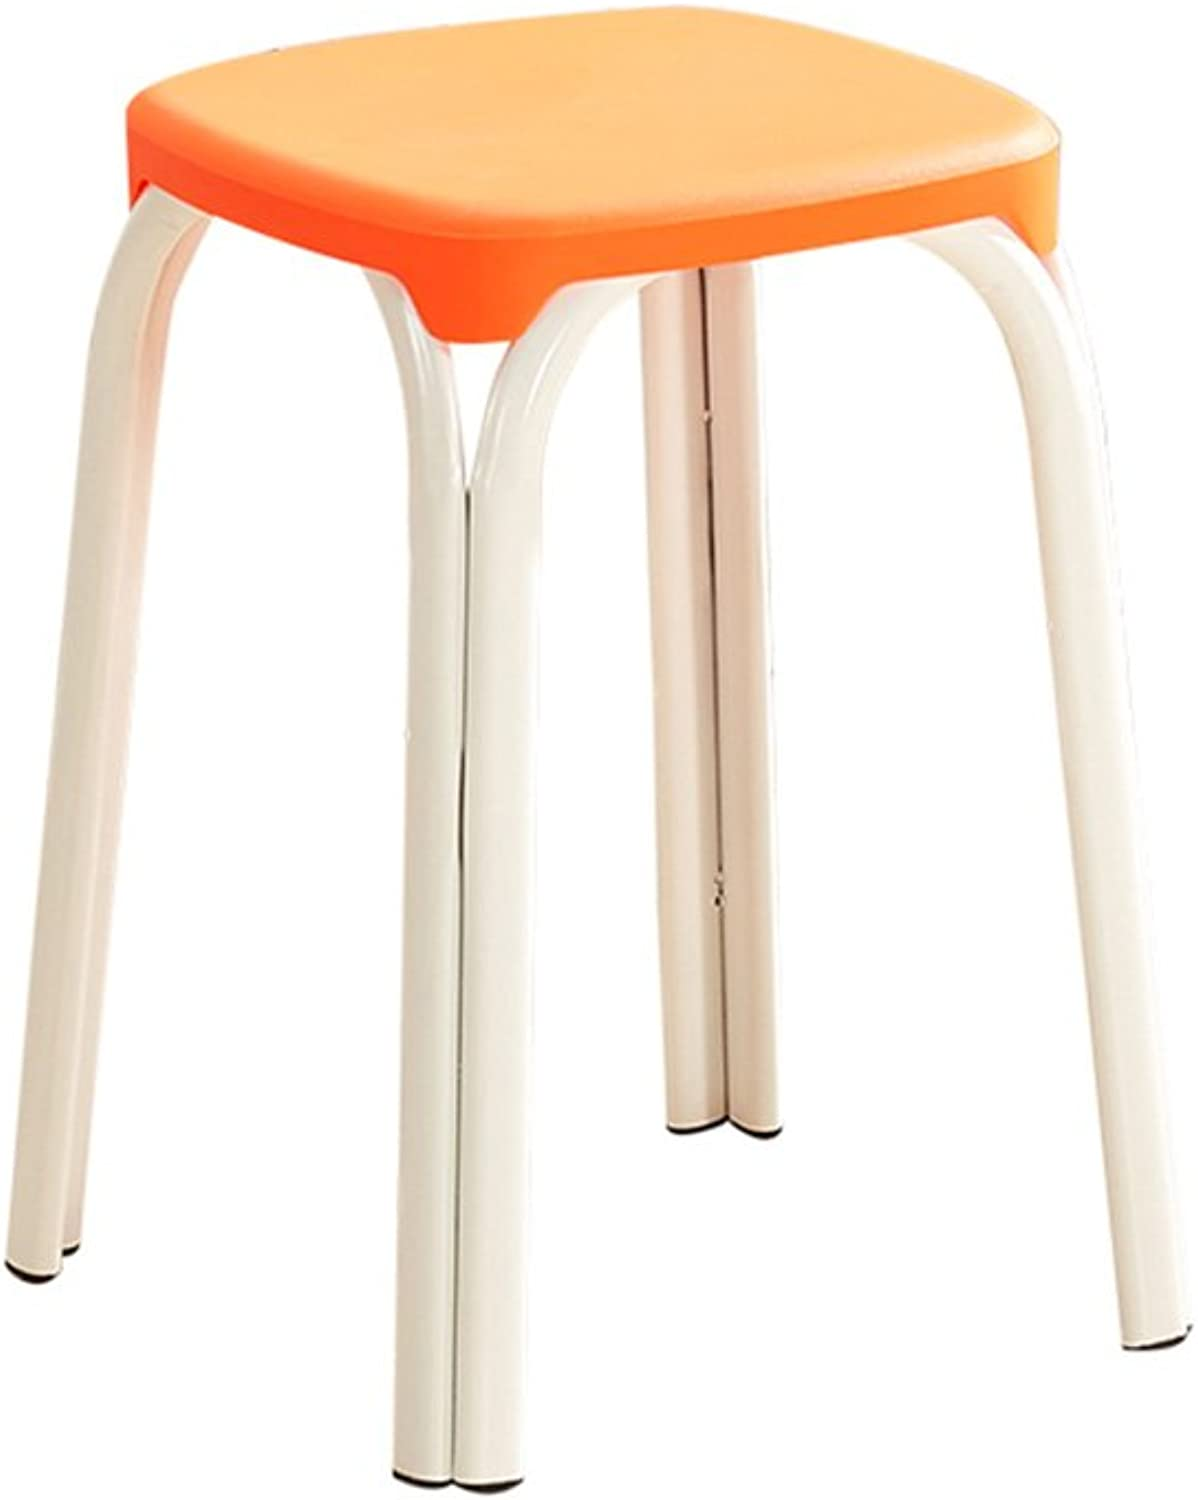 Plastic Stool Padded Adult Household Dining Table Bar Stool Fashion Chair Modern Simple Living Room high Stool (color   2)